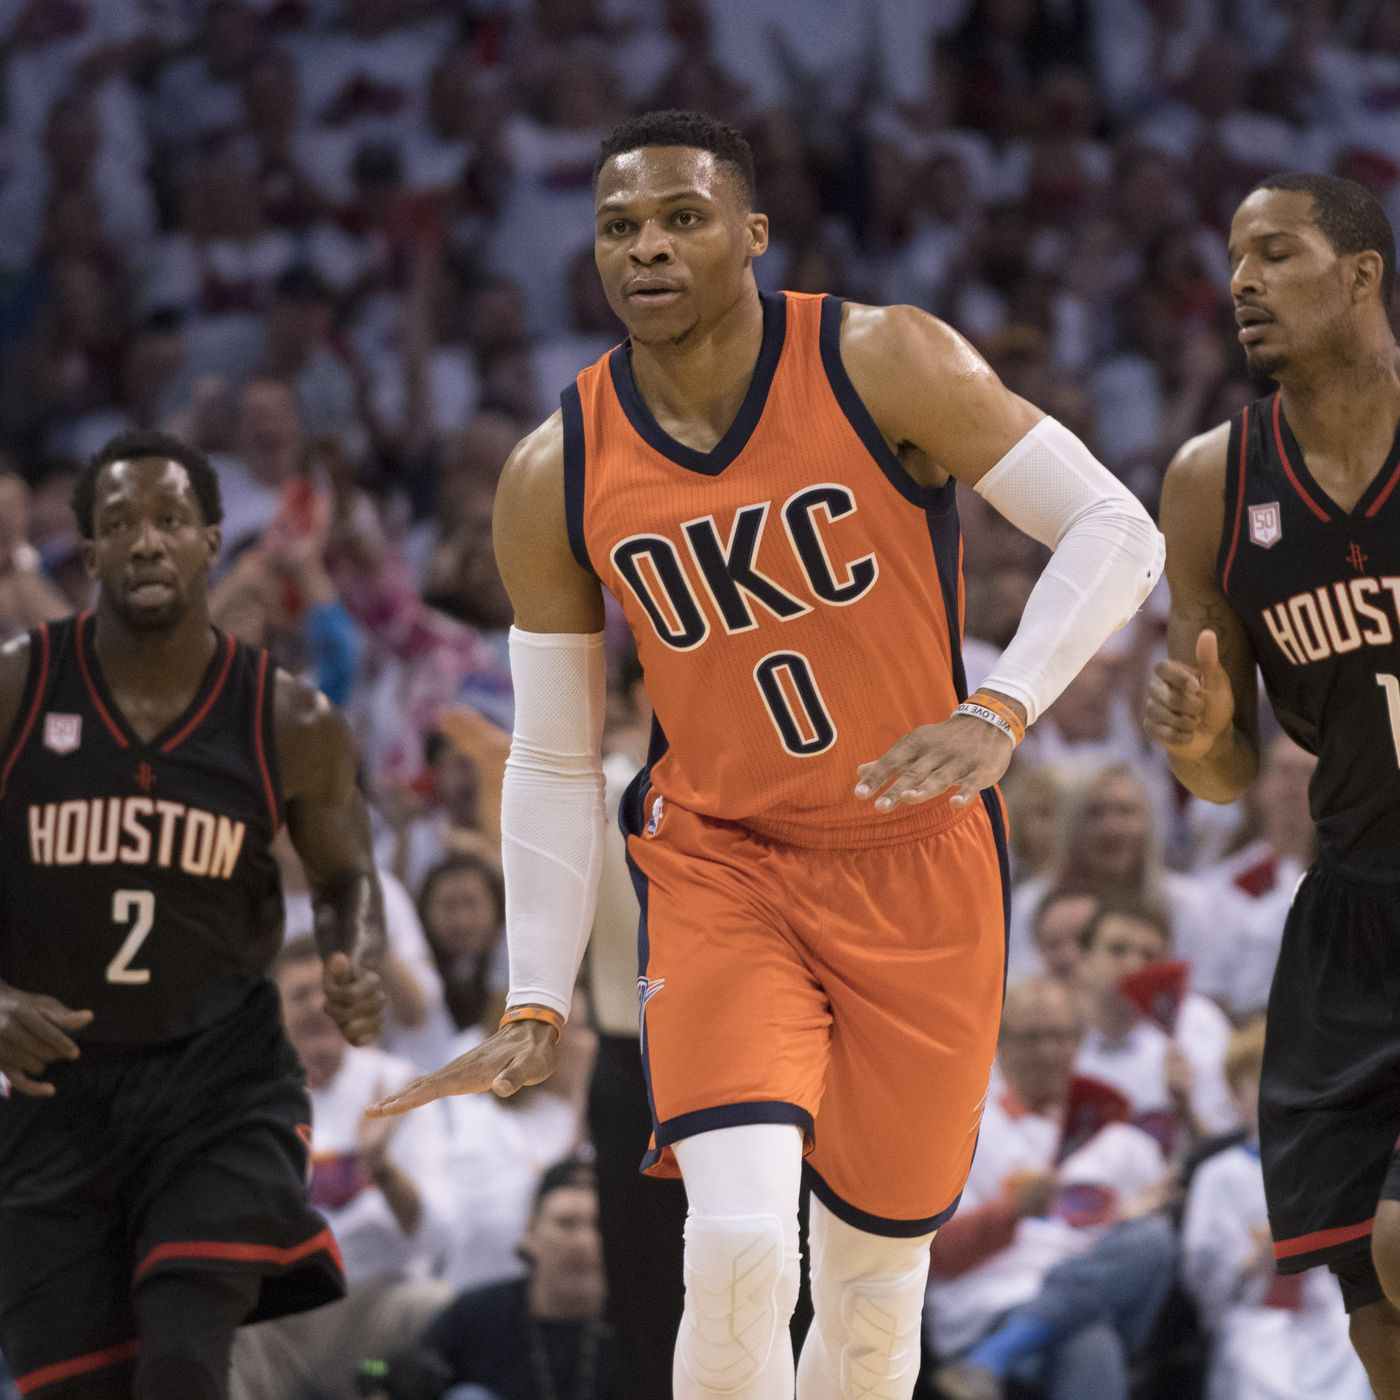 d0da96c779f Russell Westbrook was the only real NBA MVP choice - SBNation.com